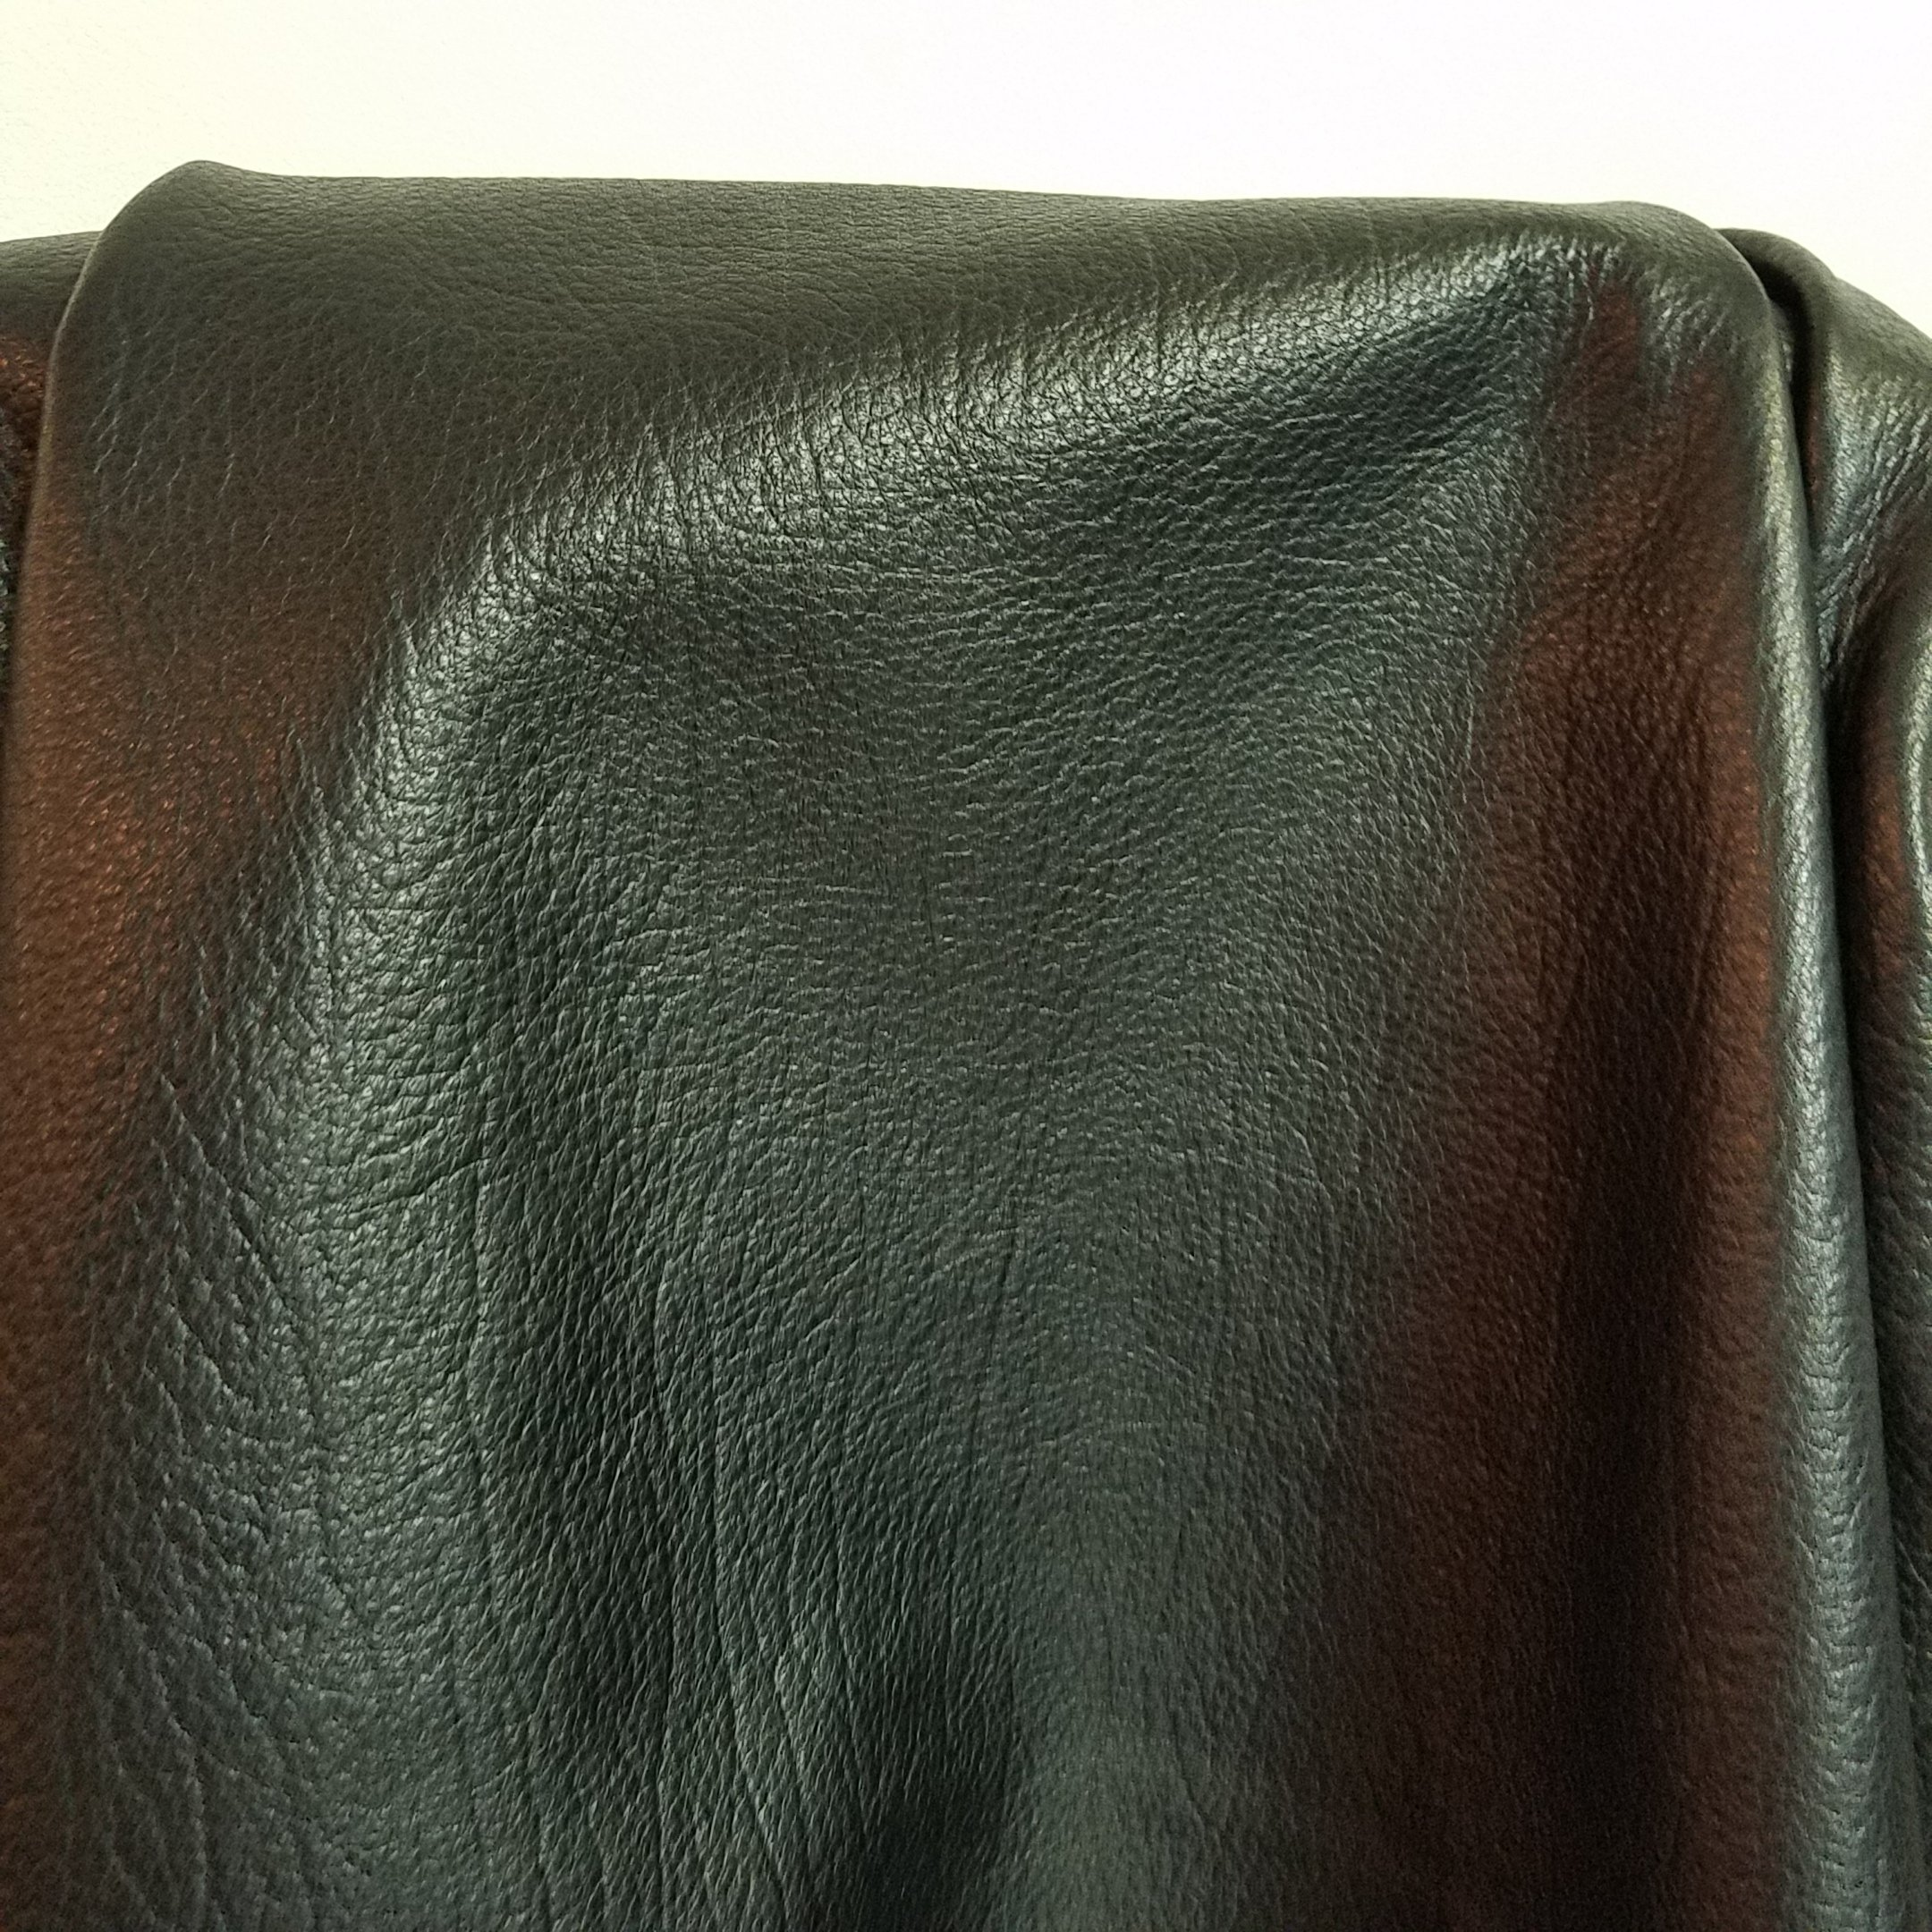 BLACK ELITE NAKED COW HIDE LARGE LEATHER SKINS 20-23 SQ.FT. 2.5 OZ. UPHOLSTERY BOOK CHAP NAT LEATHERS (20-23 SQ.FT.) 32''X 60'' by NAT Leathers (Image #1)